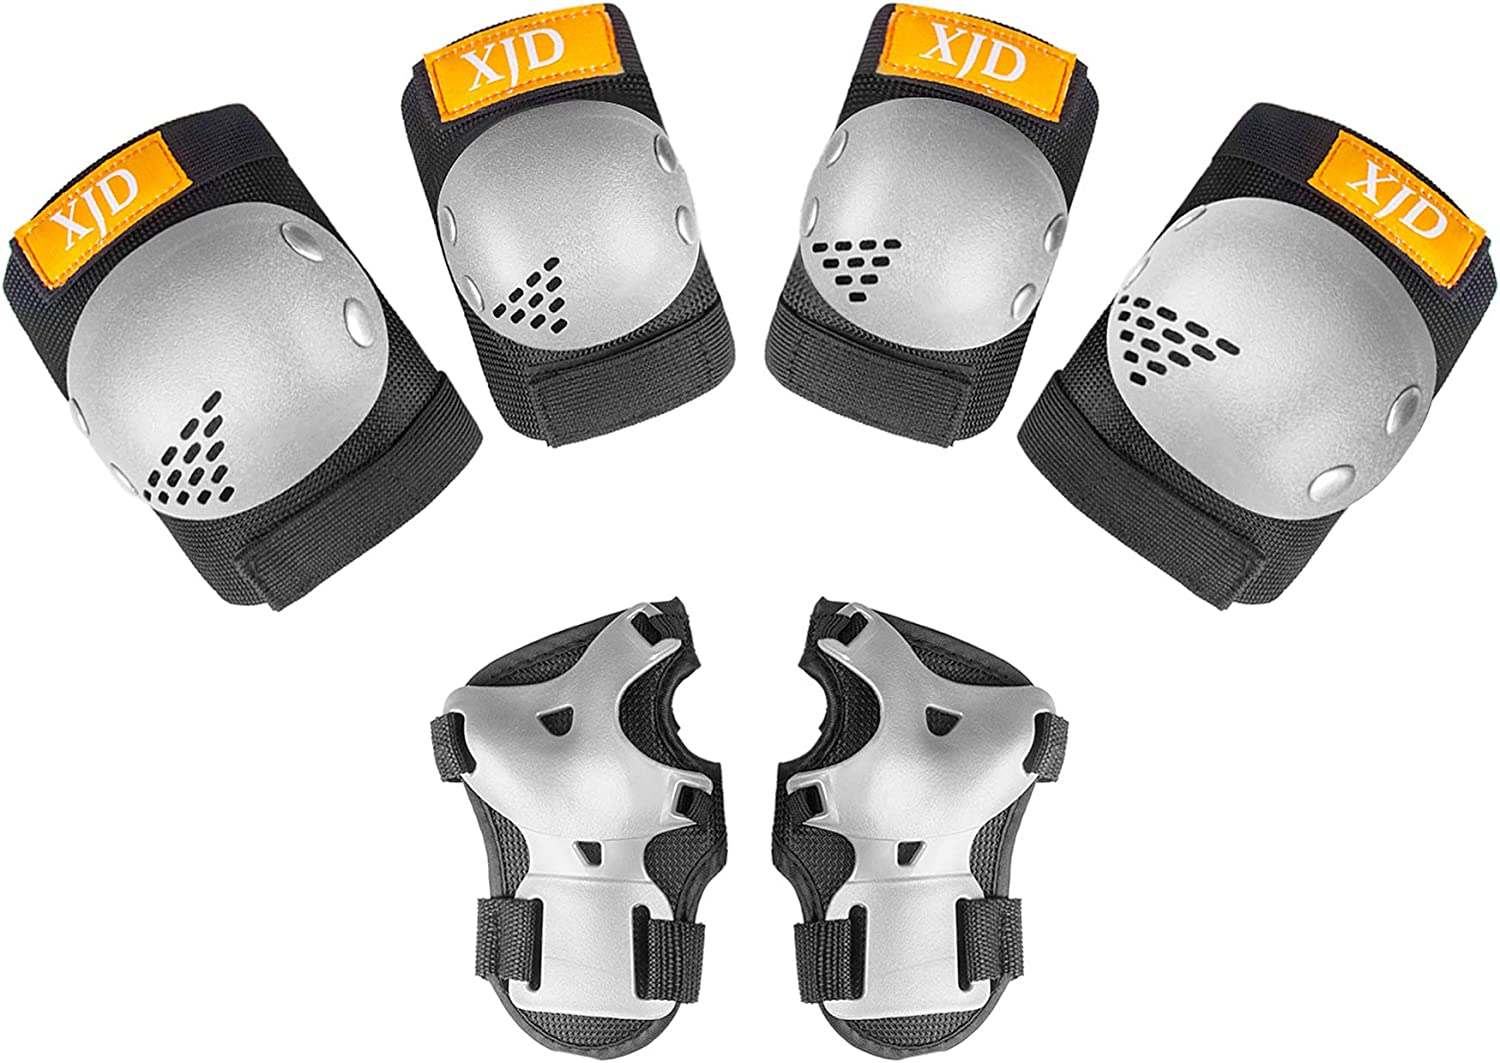 Kids Knee Pads Elbow Pads Wrist Guards Toddler Protective Gear Set Cycling Small